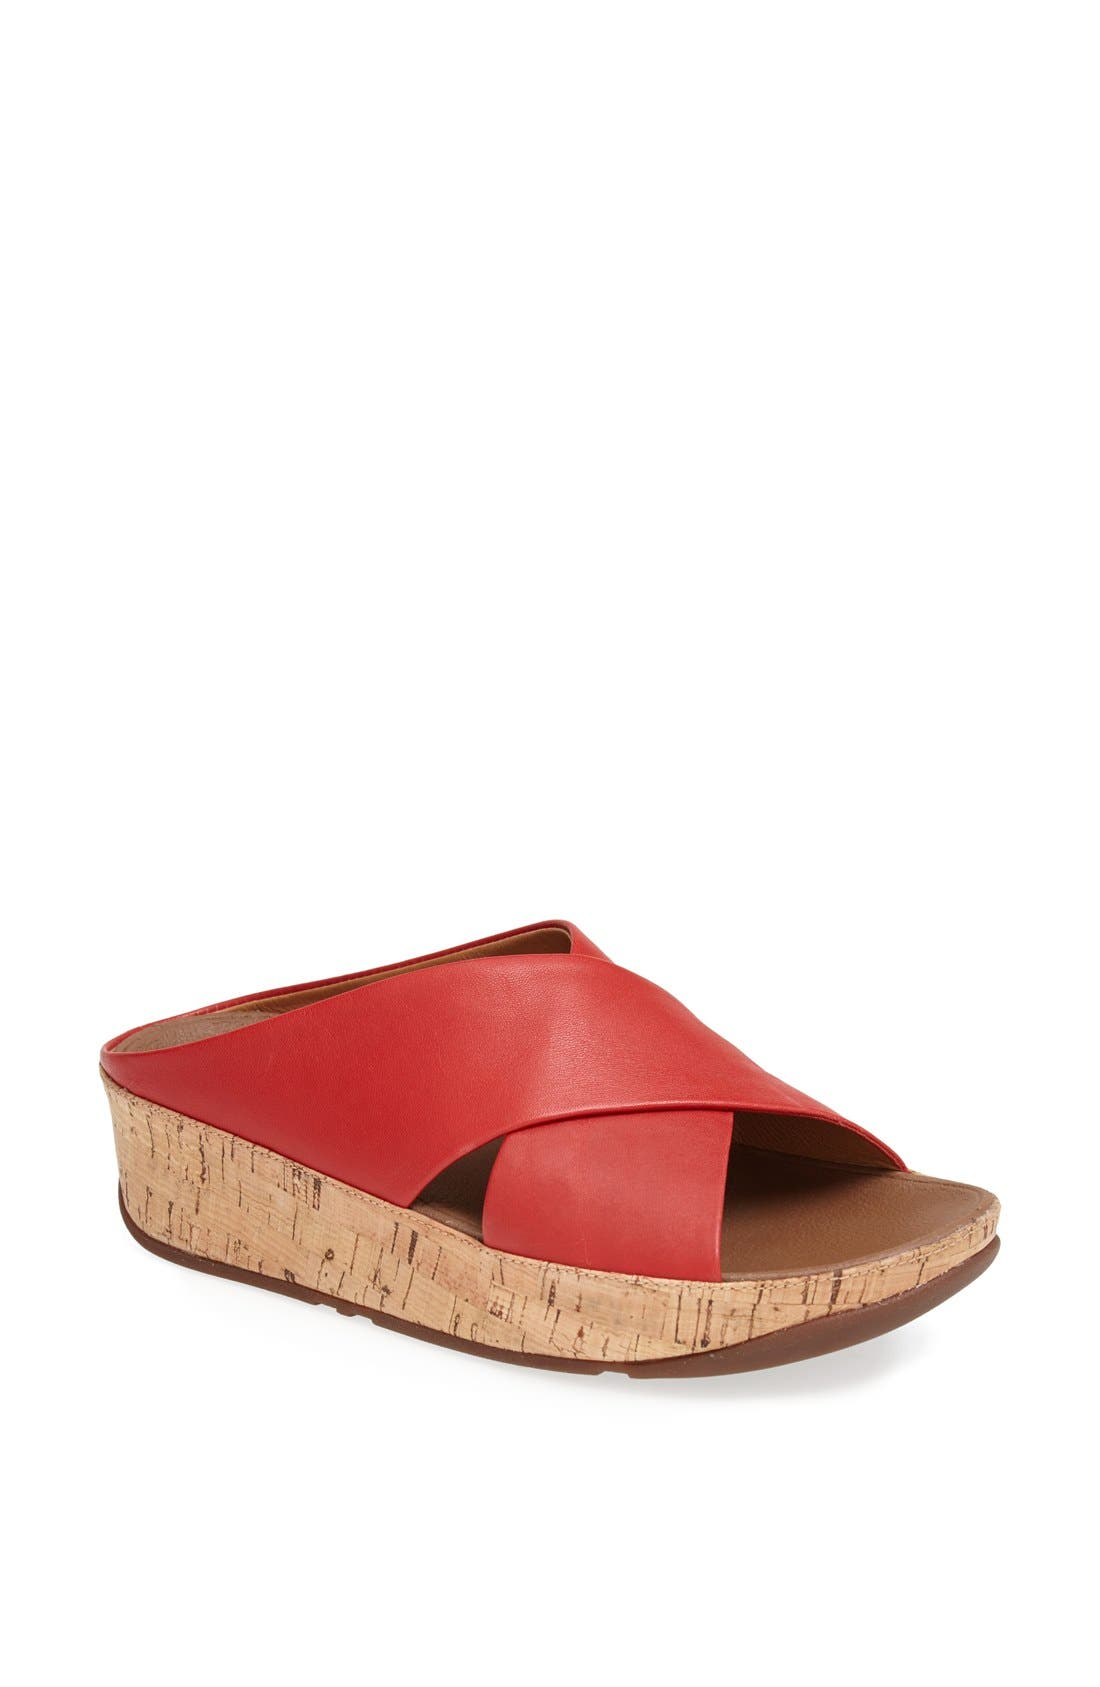 Alternate Image 1 Selected - FitFlop 'Kys™' Leather Sandal